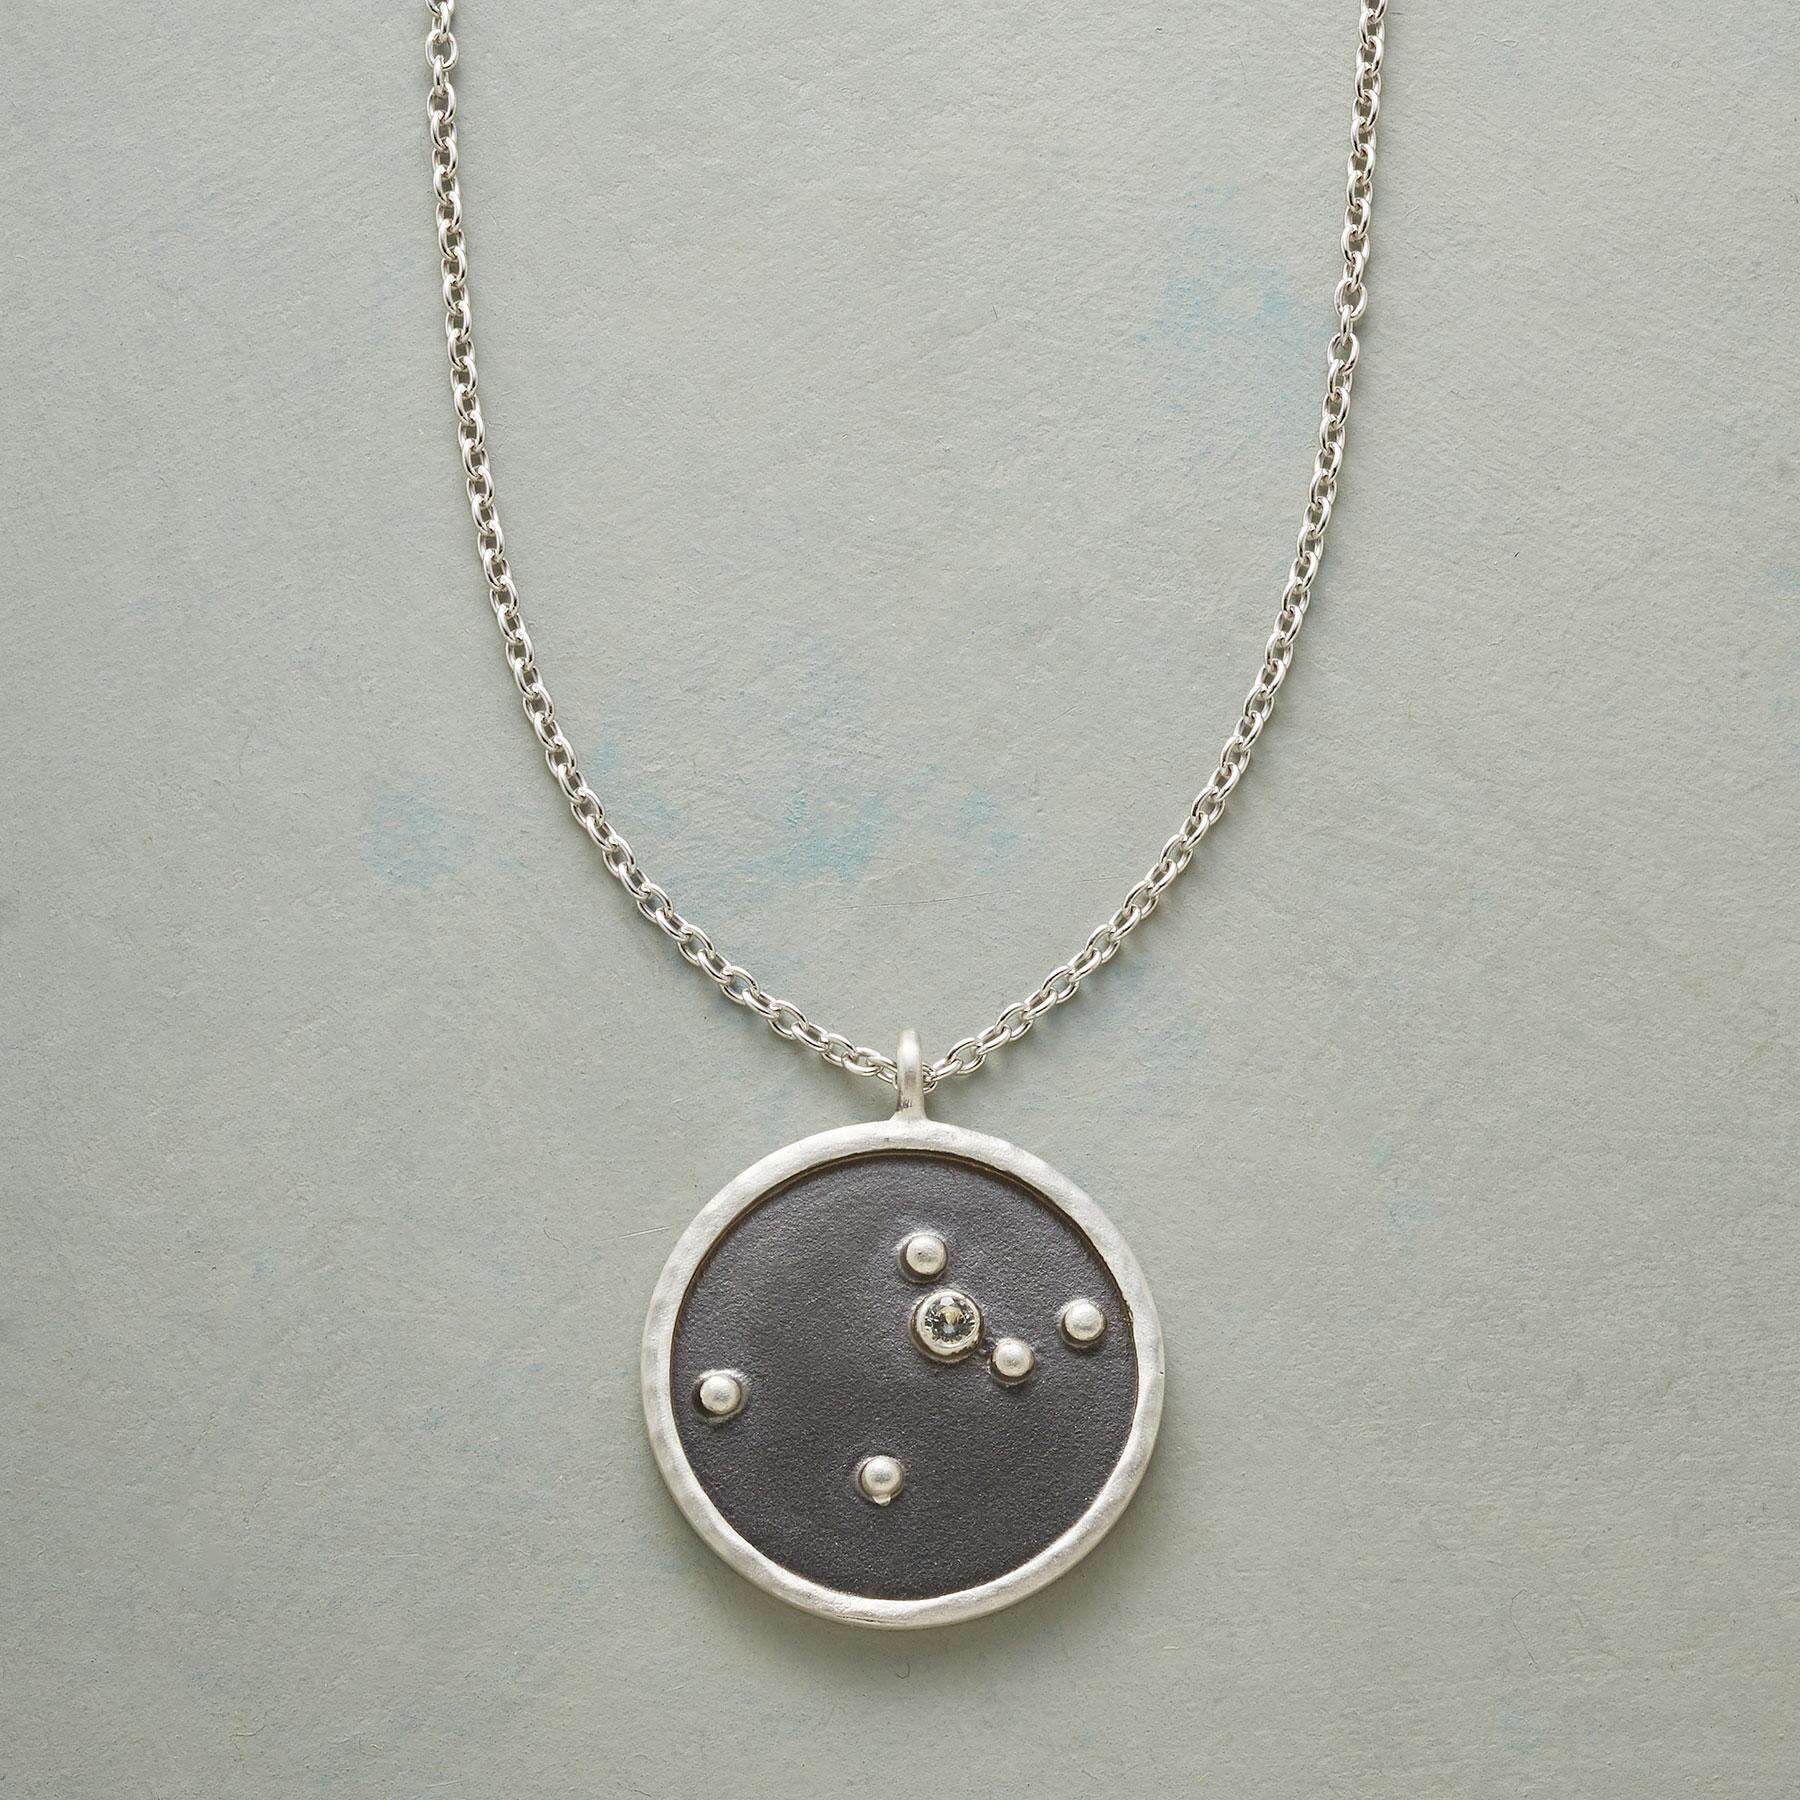 STERLING SILVER ZODIAC CONSTELLATION NECKLACE: View 1